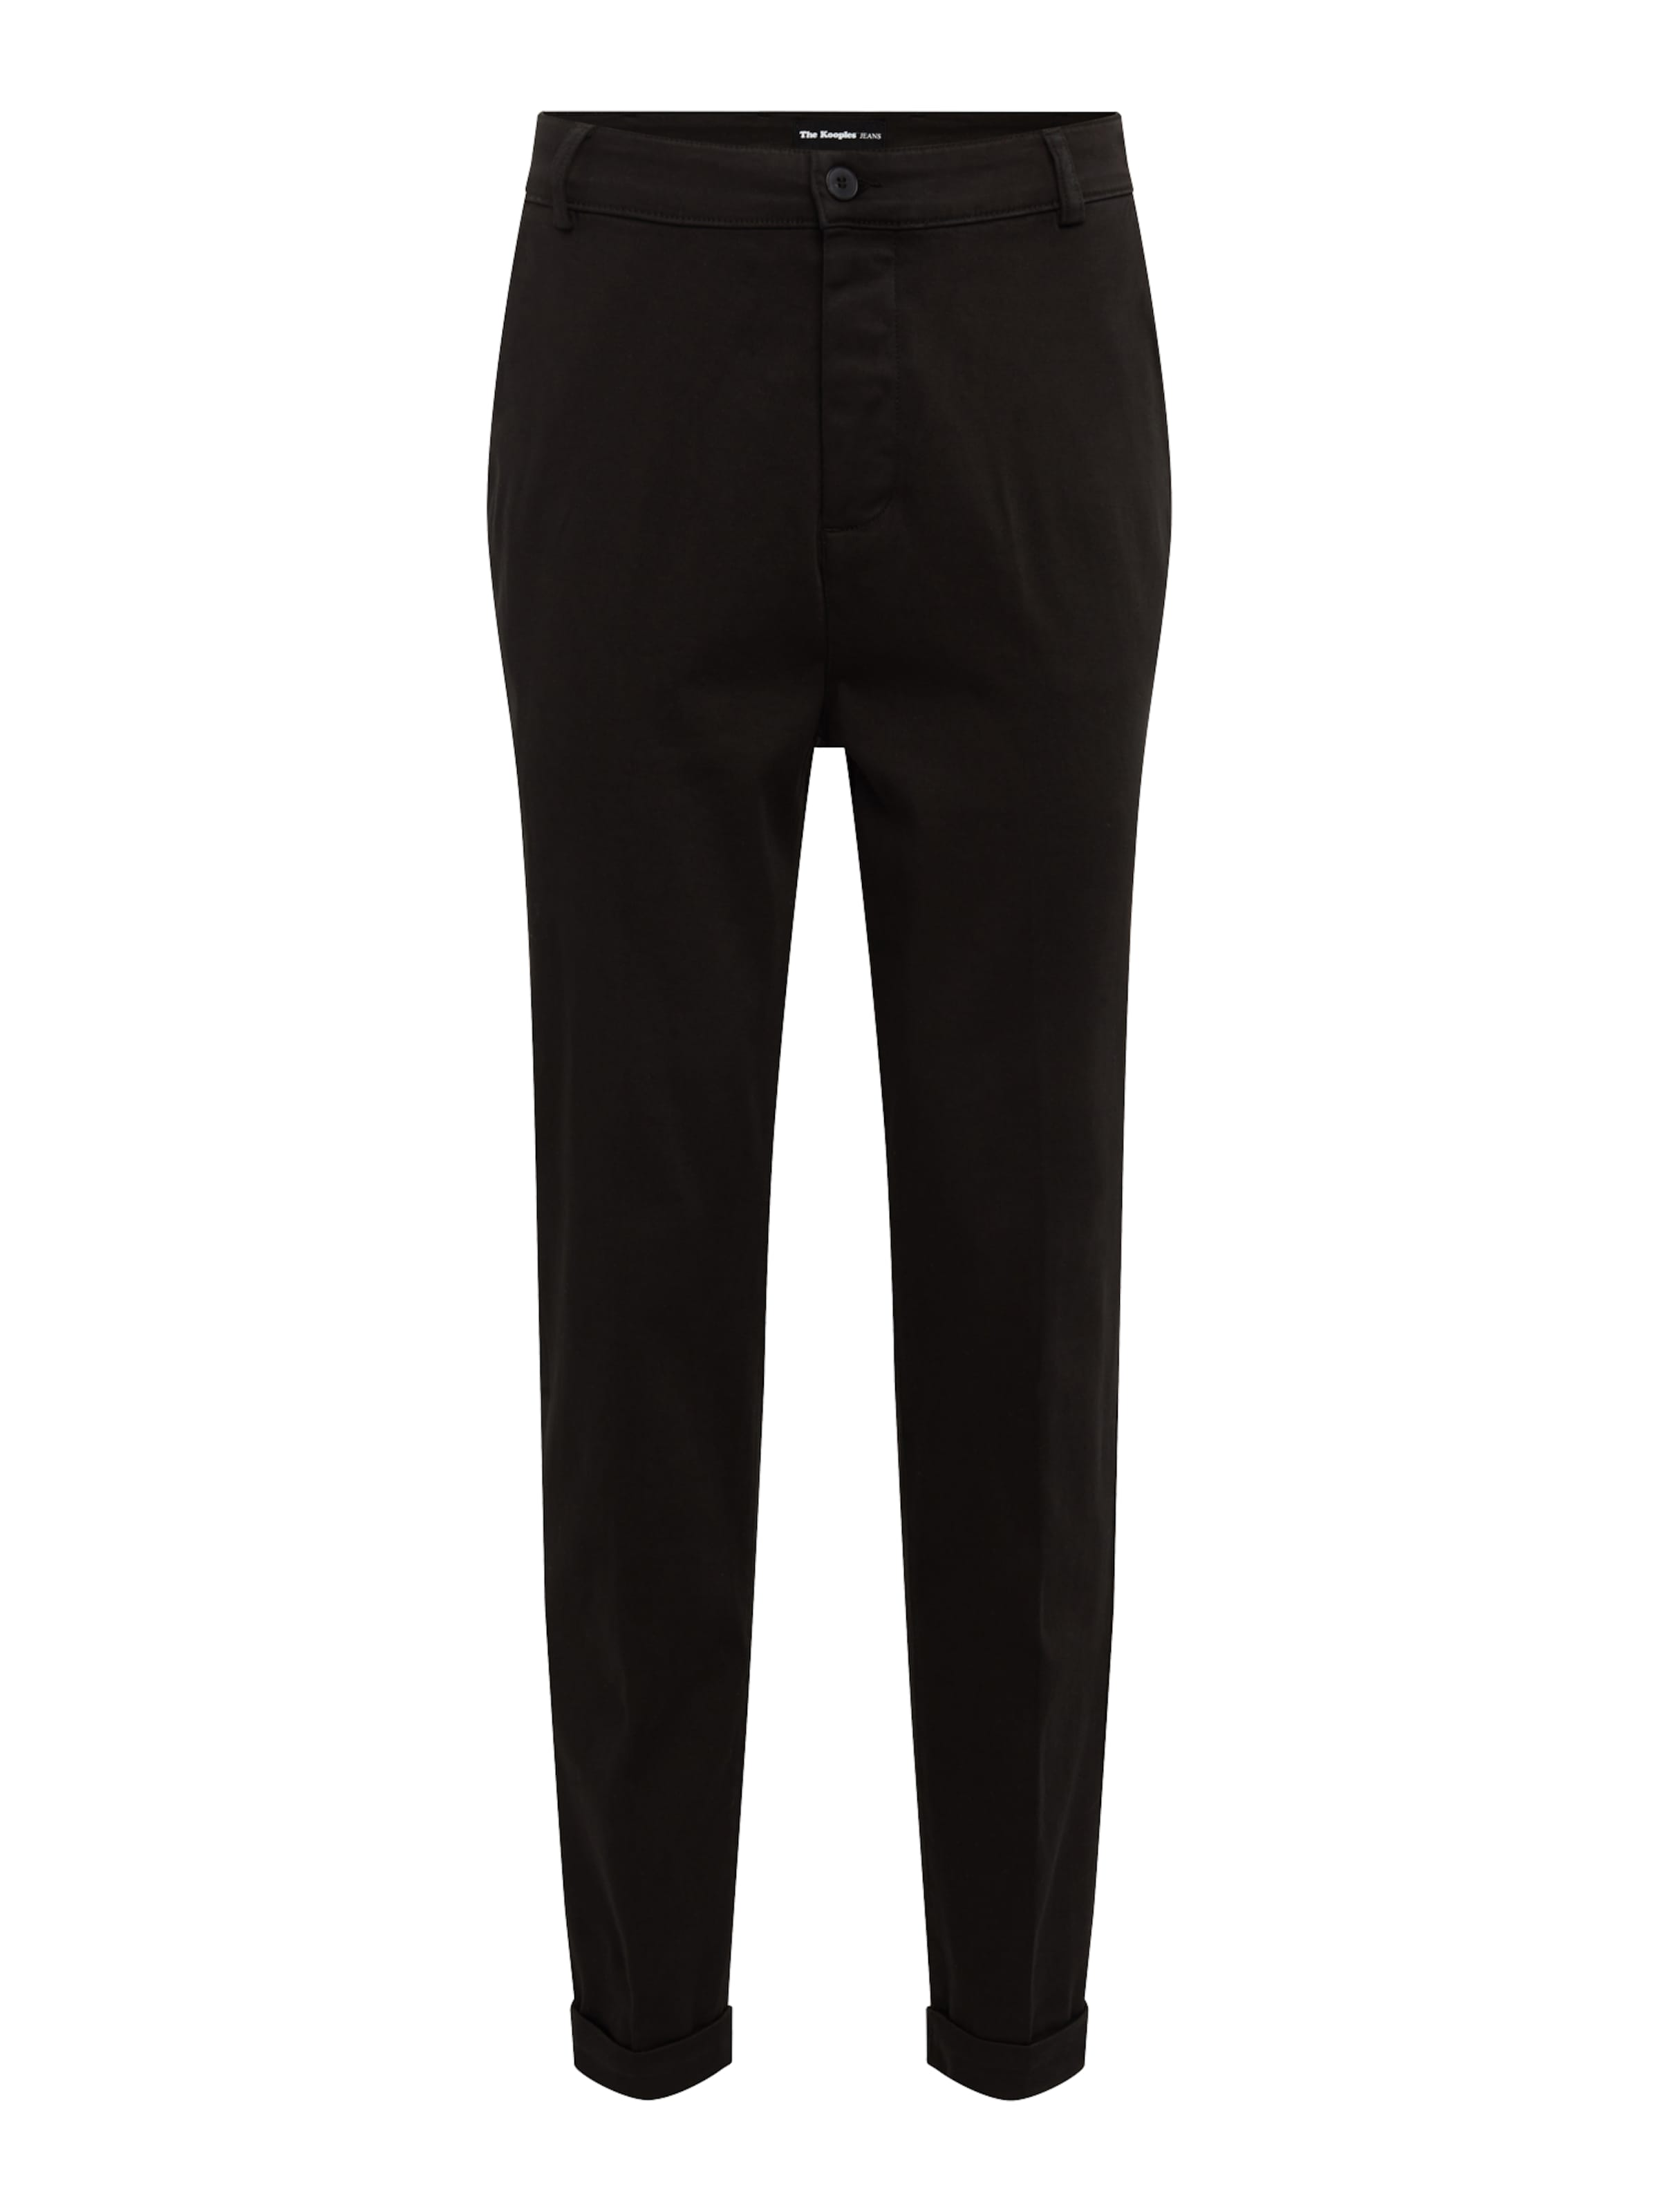 En Sport Pantalon Kooples The Noir 'trouser' 9eDHE2YWI